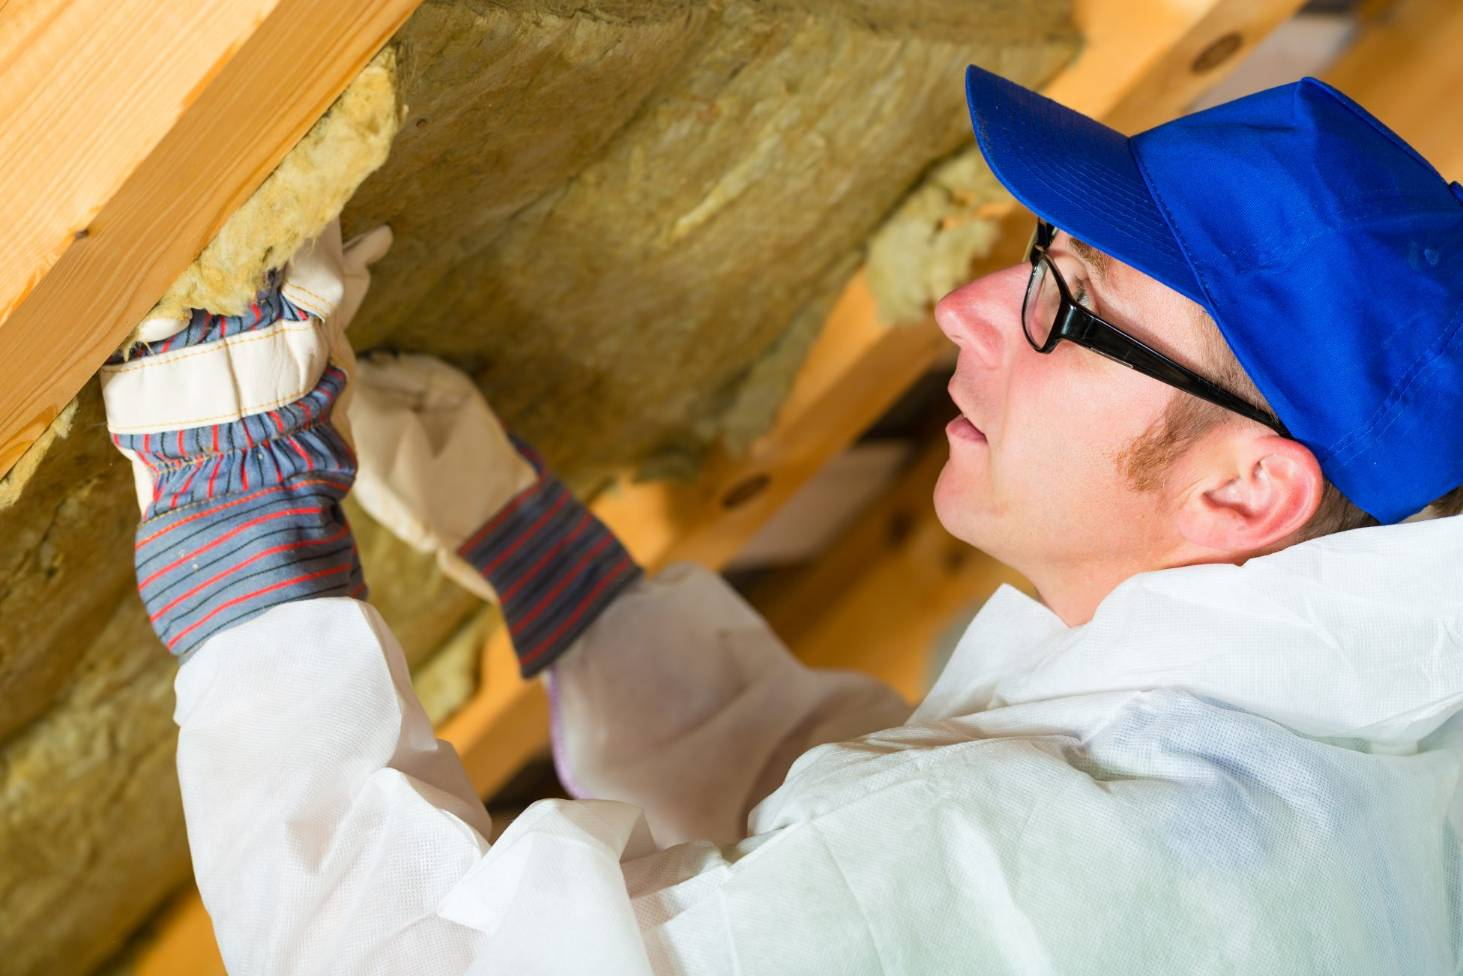 Fines Grants For Landlords Approaching Insulation Deadline Stuff Rewiring An Old House Nz